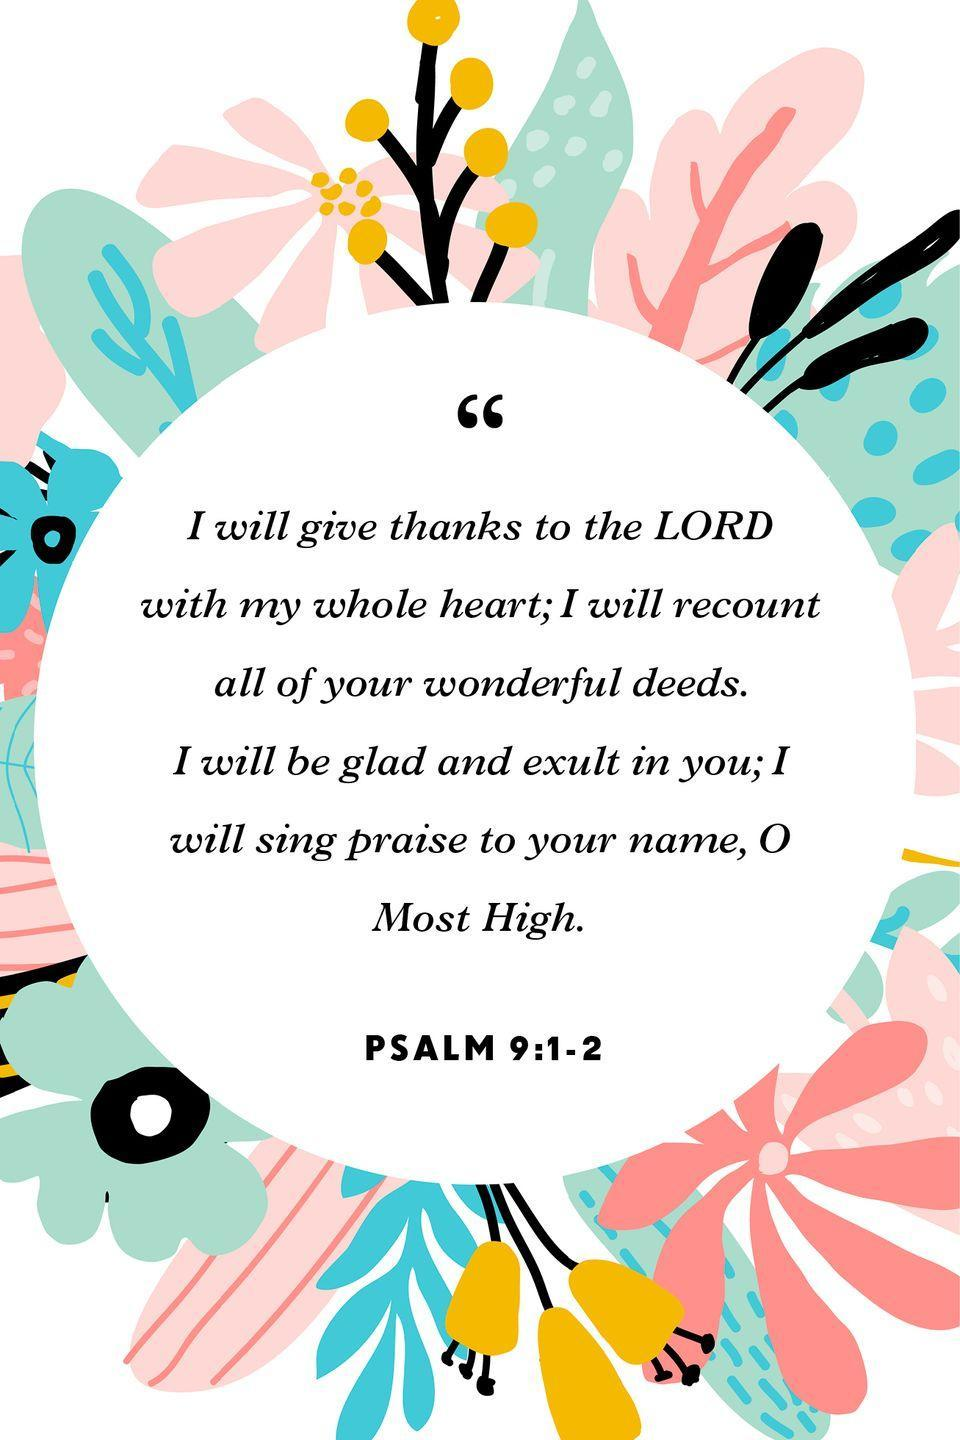 """<p>""""I will give thanks to the LORD with my whole heart; I will recount all of your wonderful deeds. I will be glad and exult in you; I will sing praise to your name, O Most High.""""</p>"""